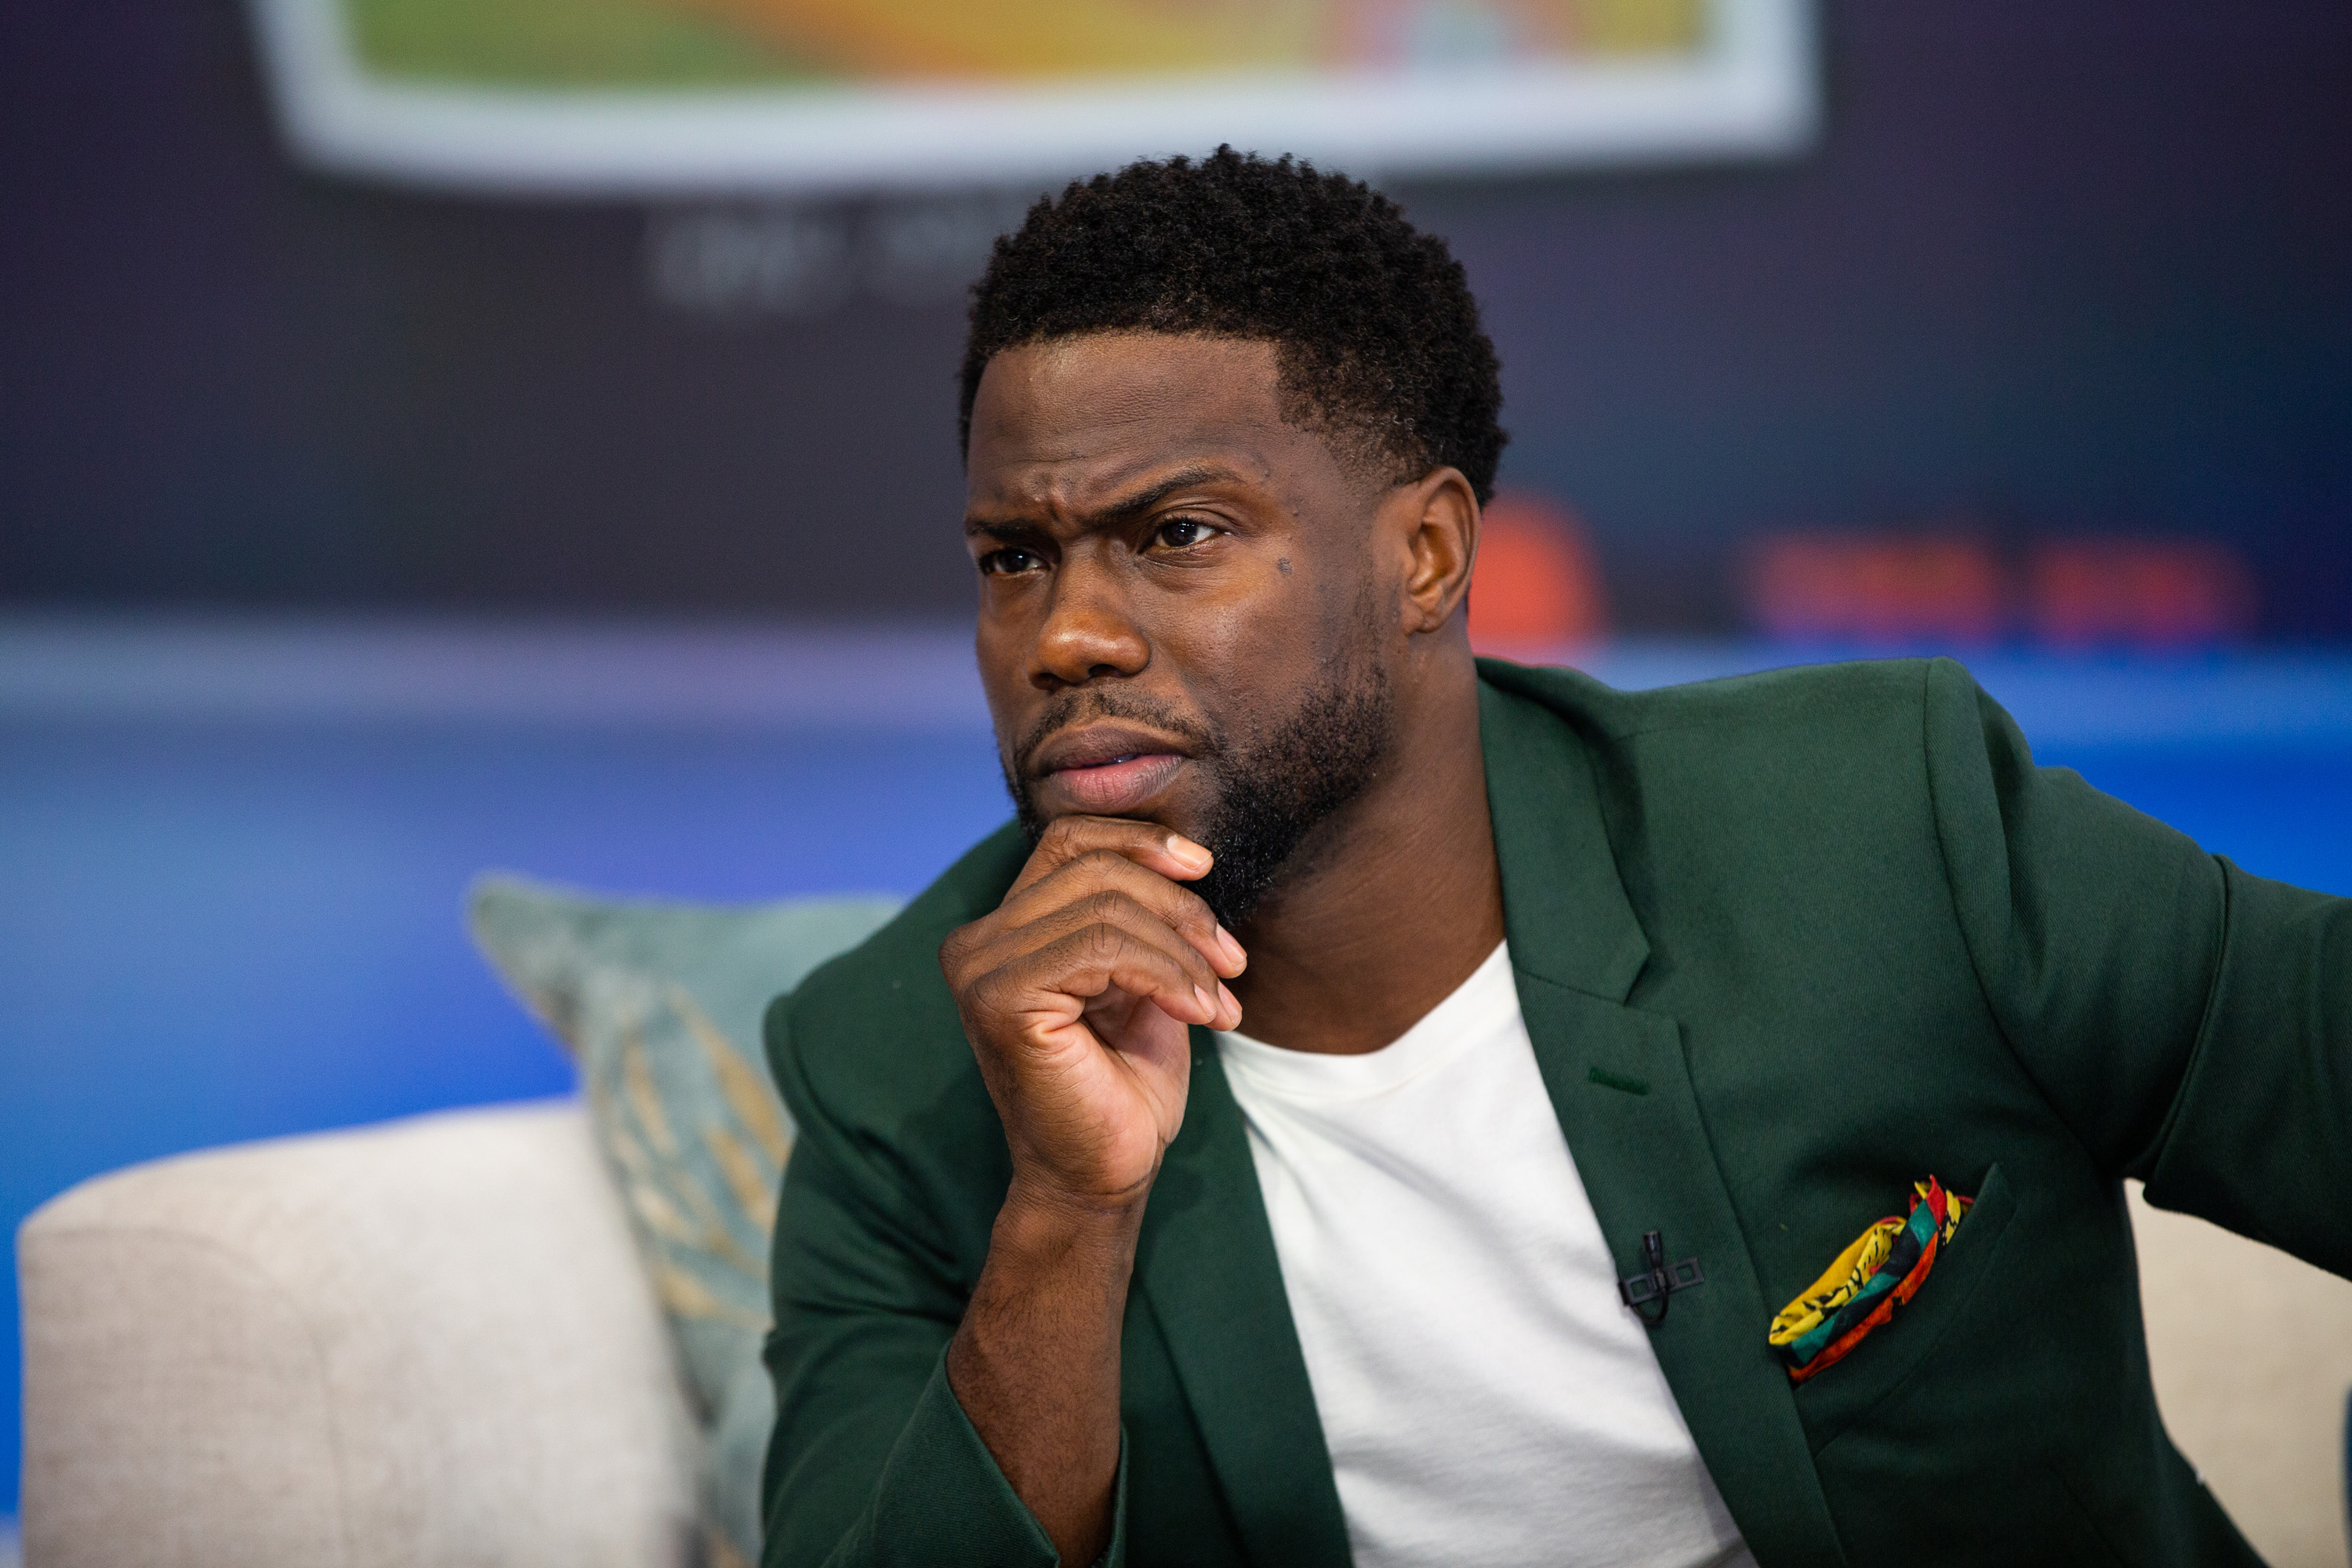 Kevin Hart pictured on The Today Show set on Thursday, September 27, 2018.